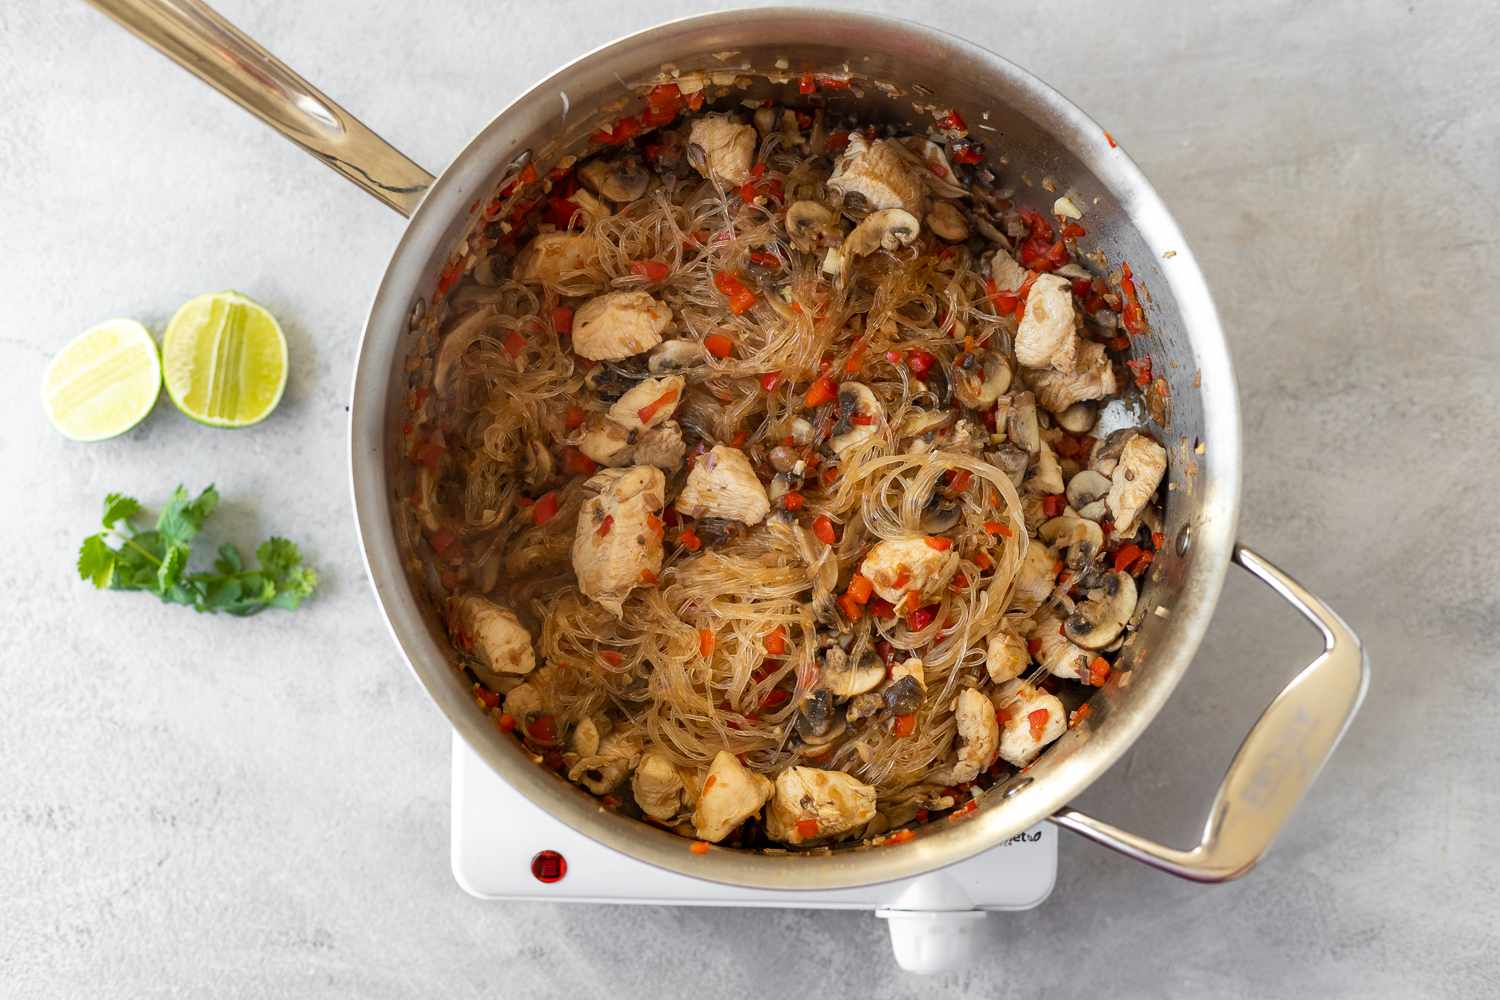 add the glass noodles to the chicken and vegetables in the skillet